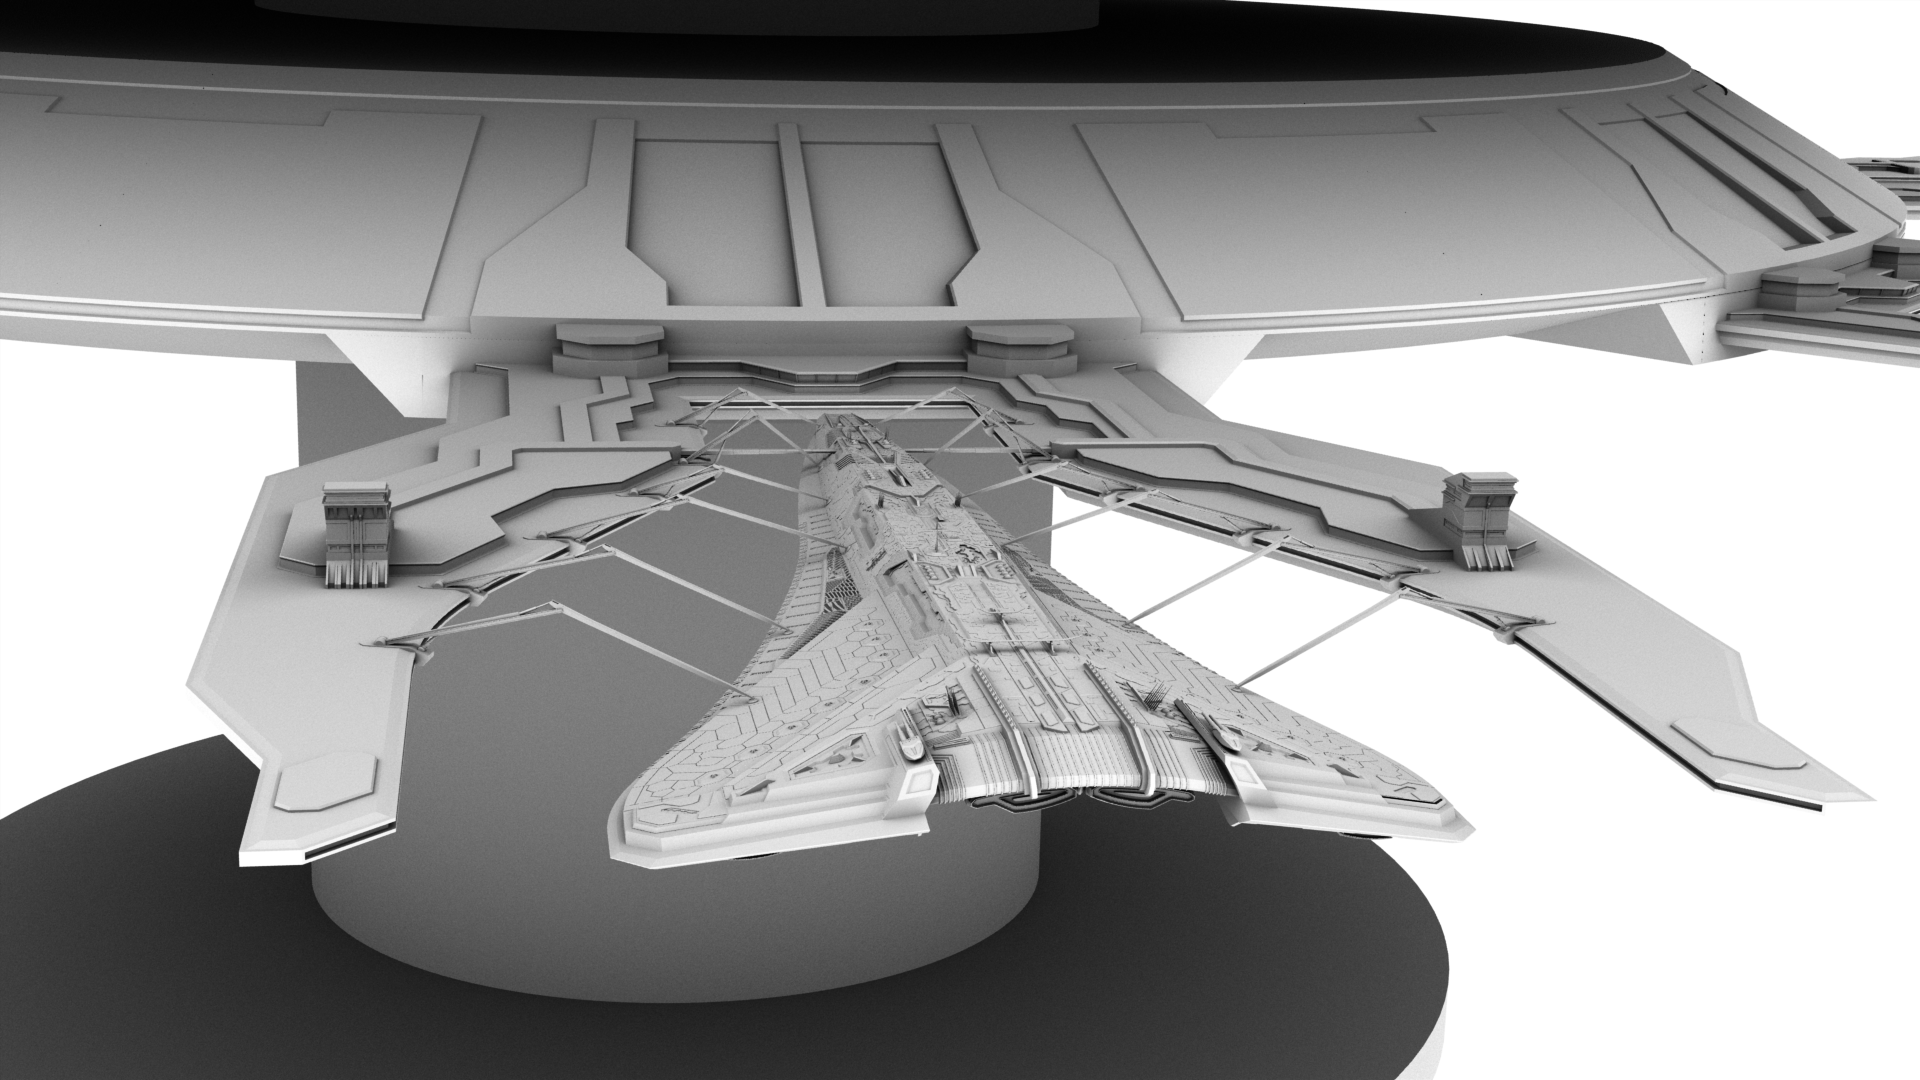 X-307 Completed and docked to something by Deliciusman